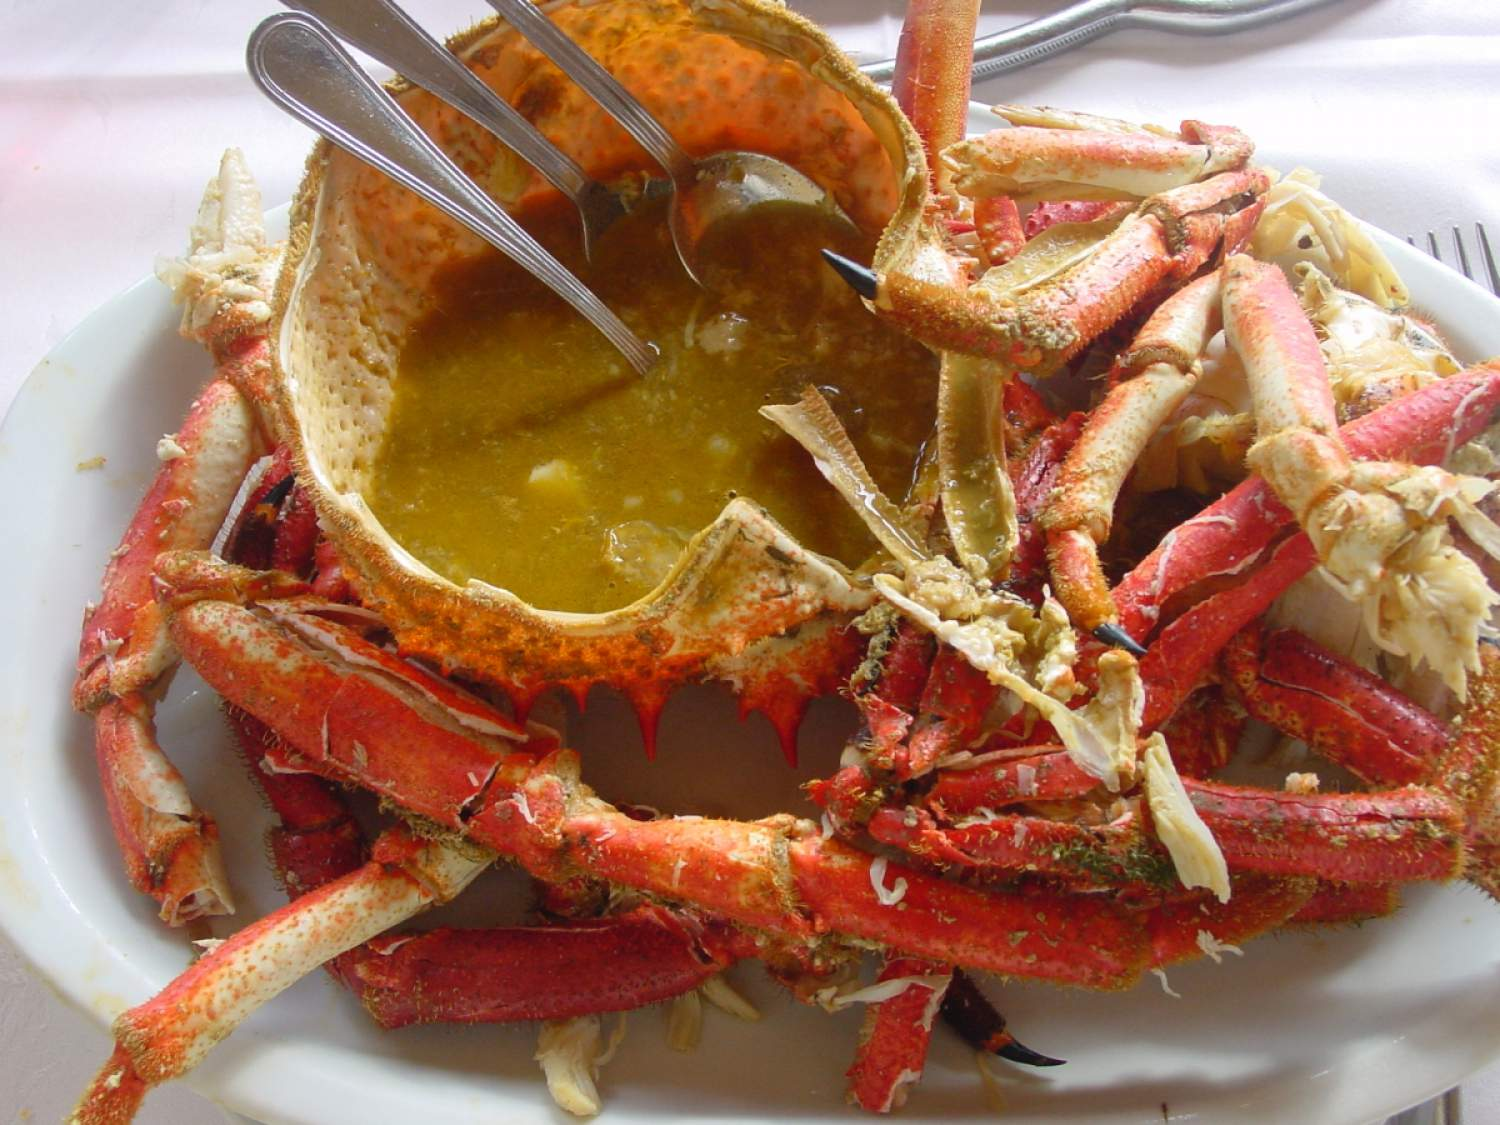 Whole crab with its sauce in Lisbon, Portugal